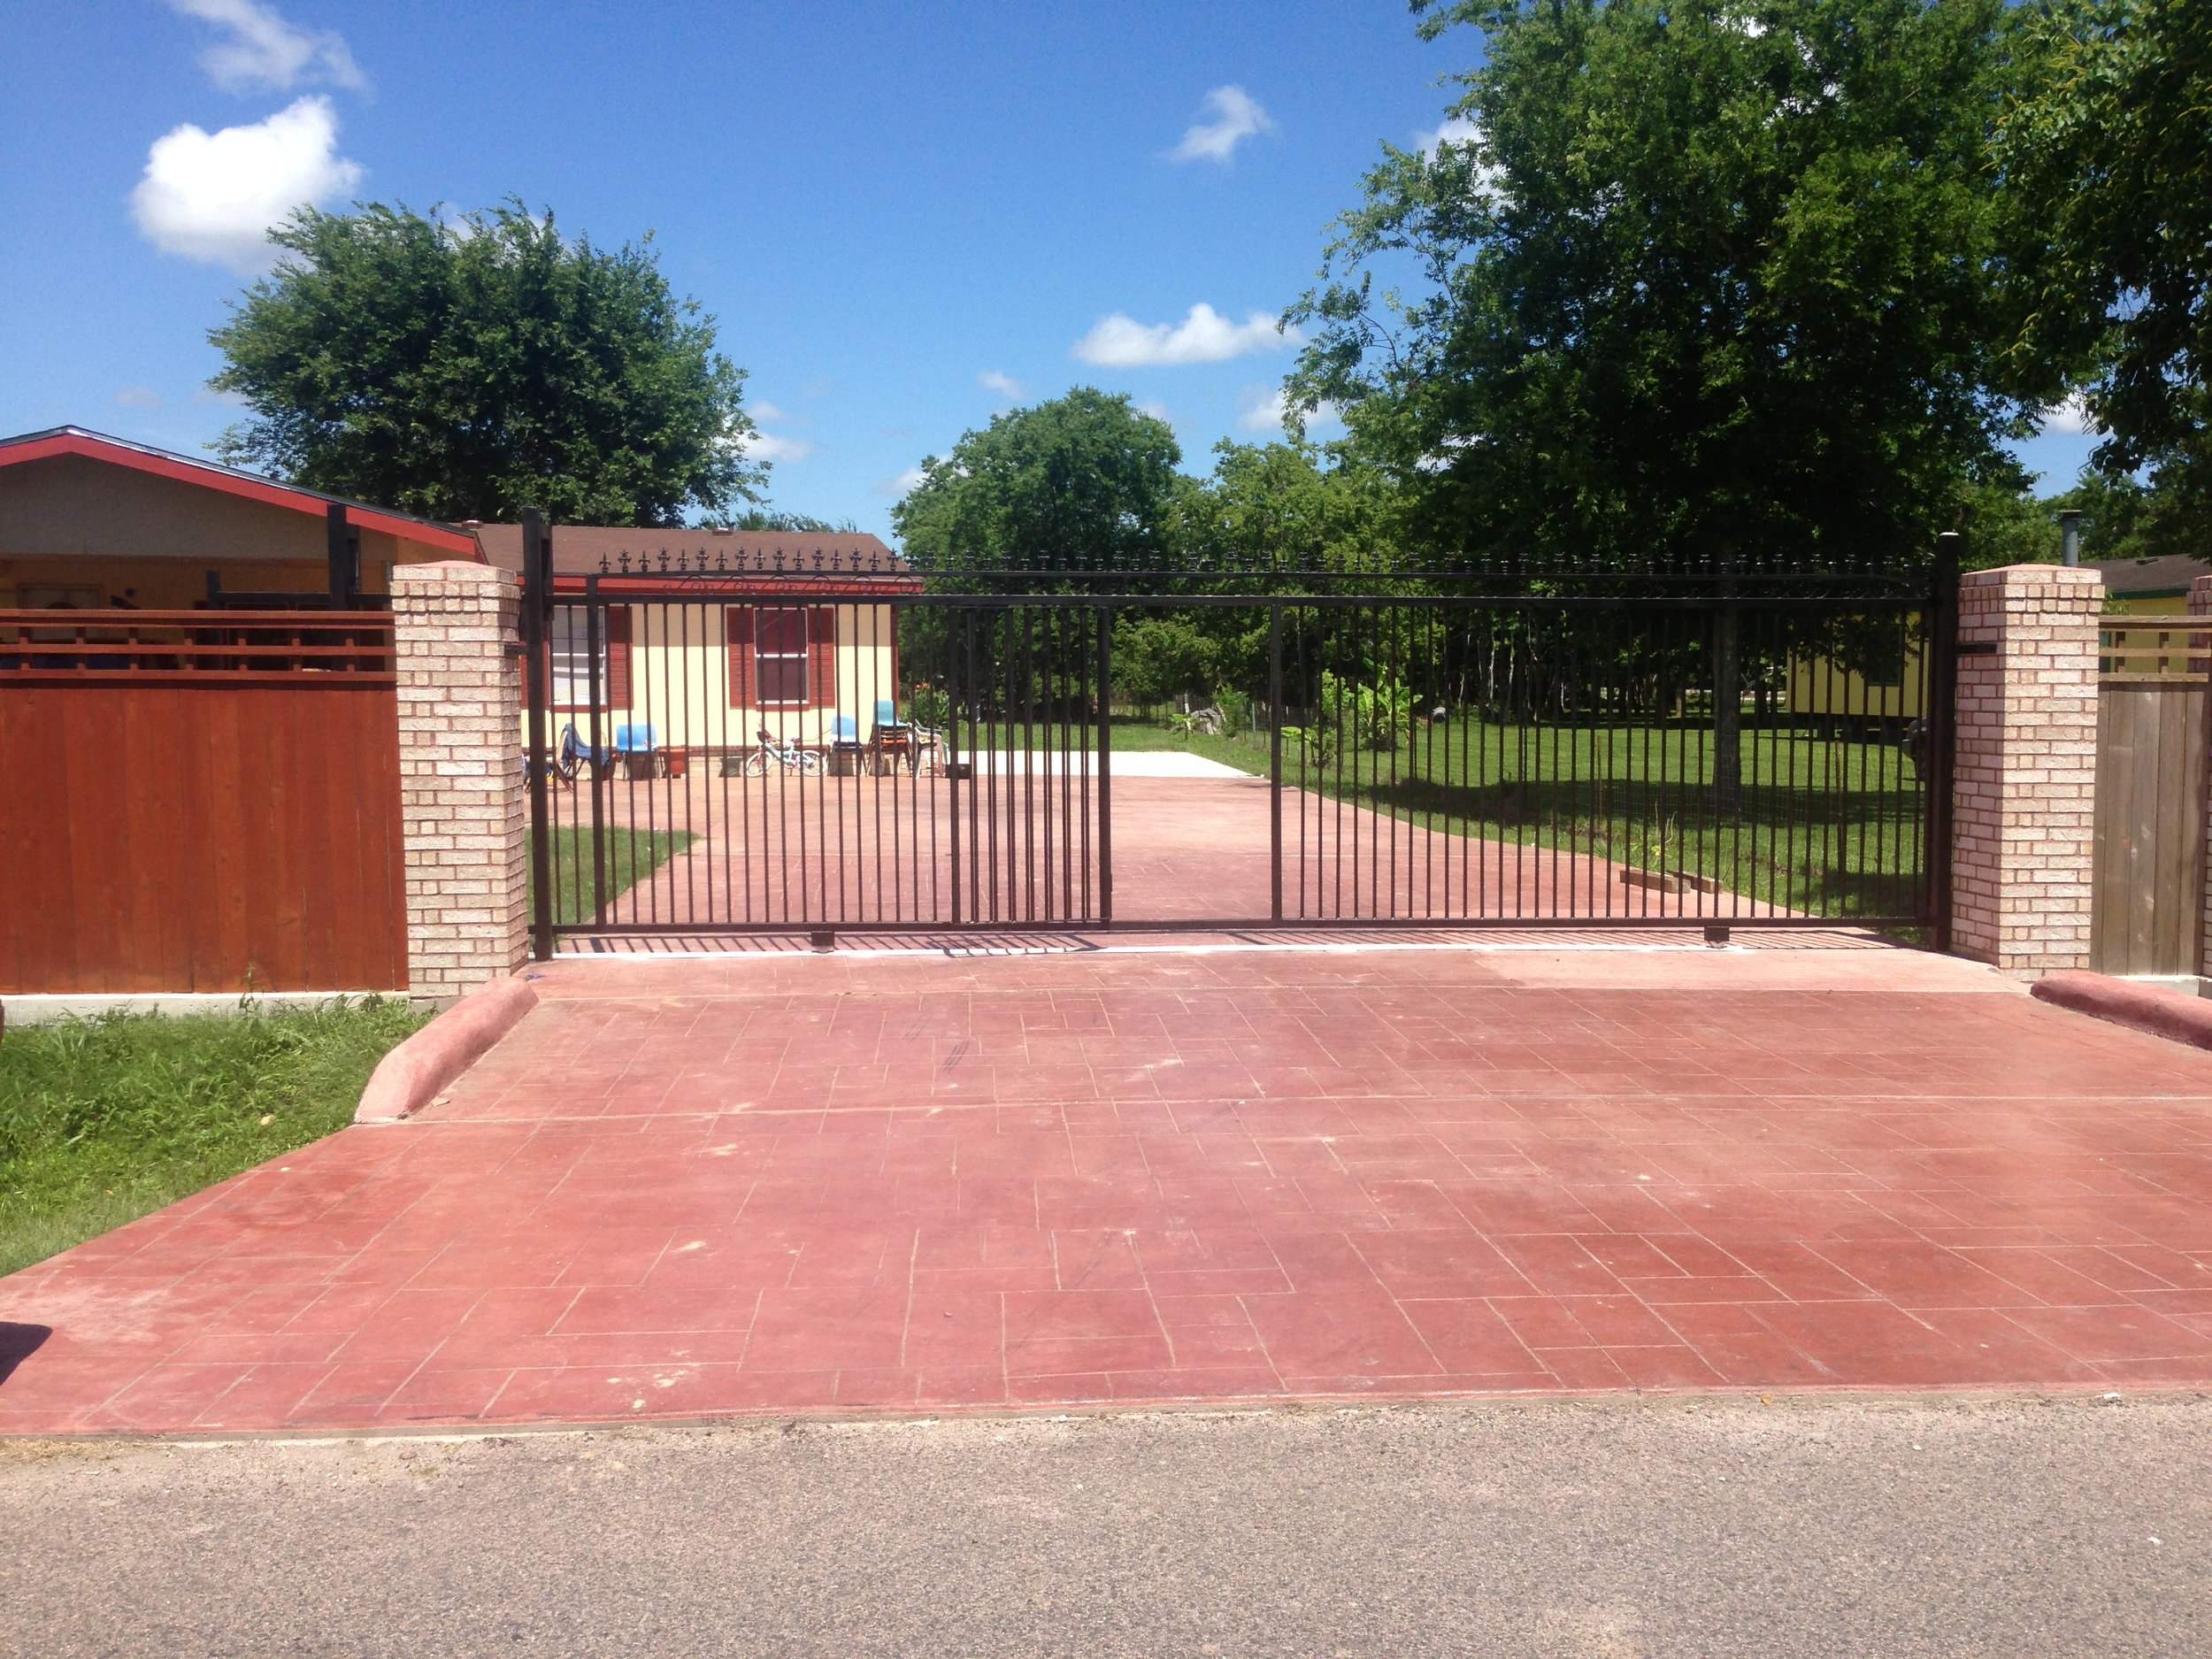 Remote access entry gate with brick columns